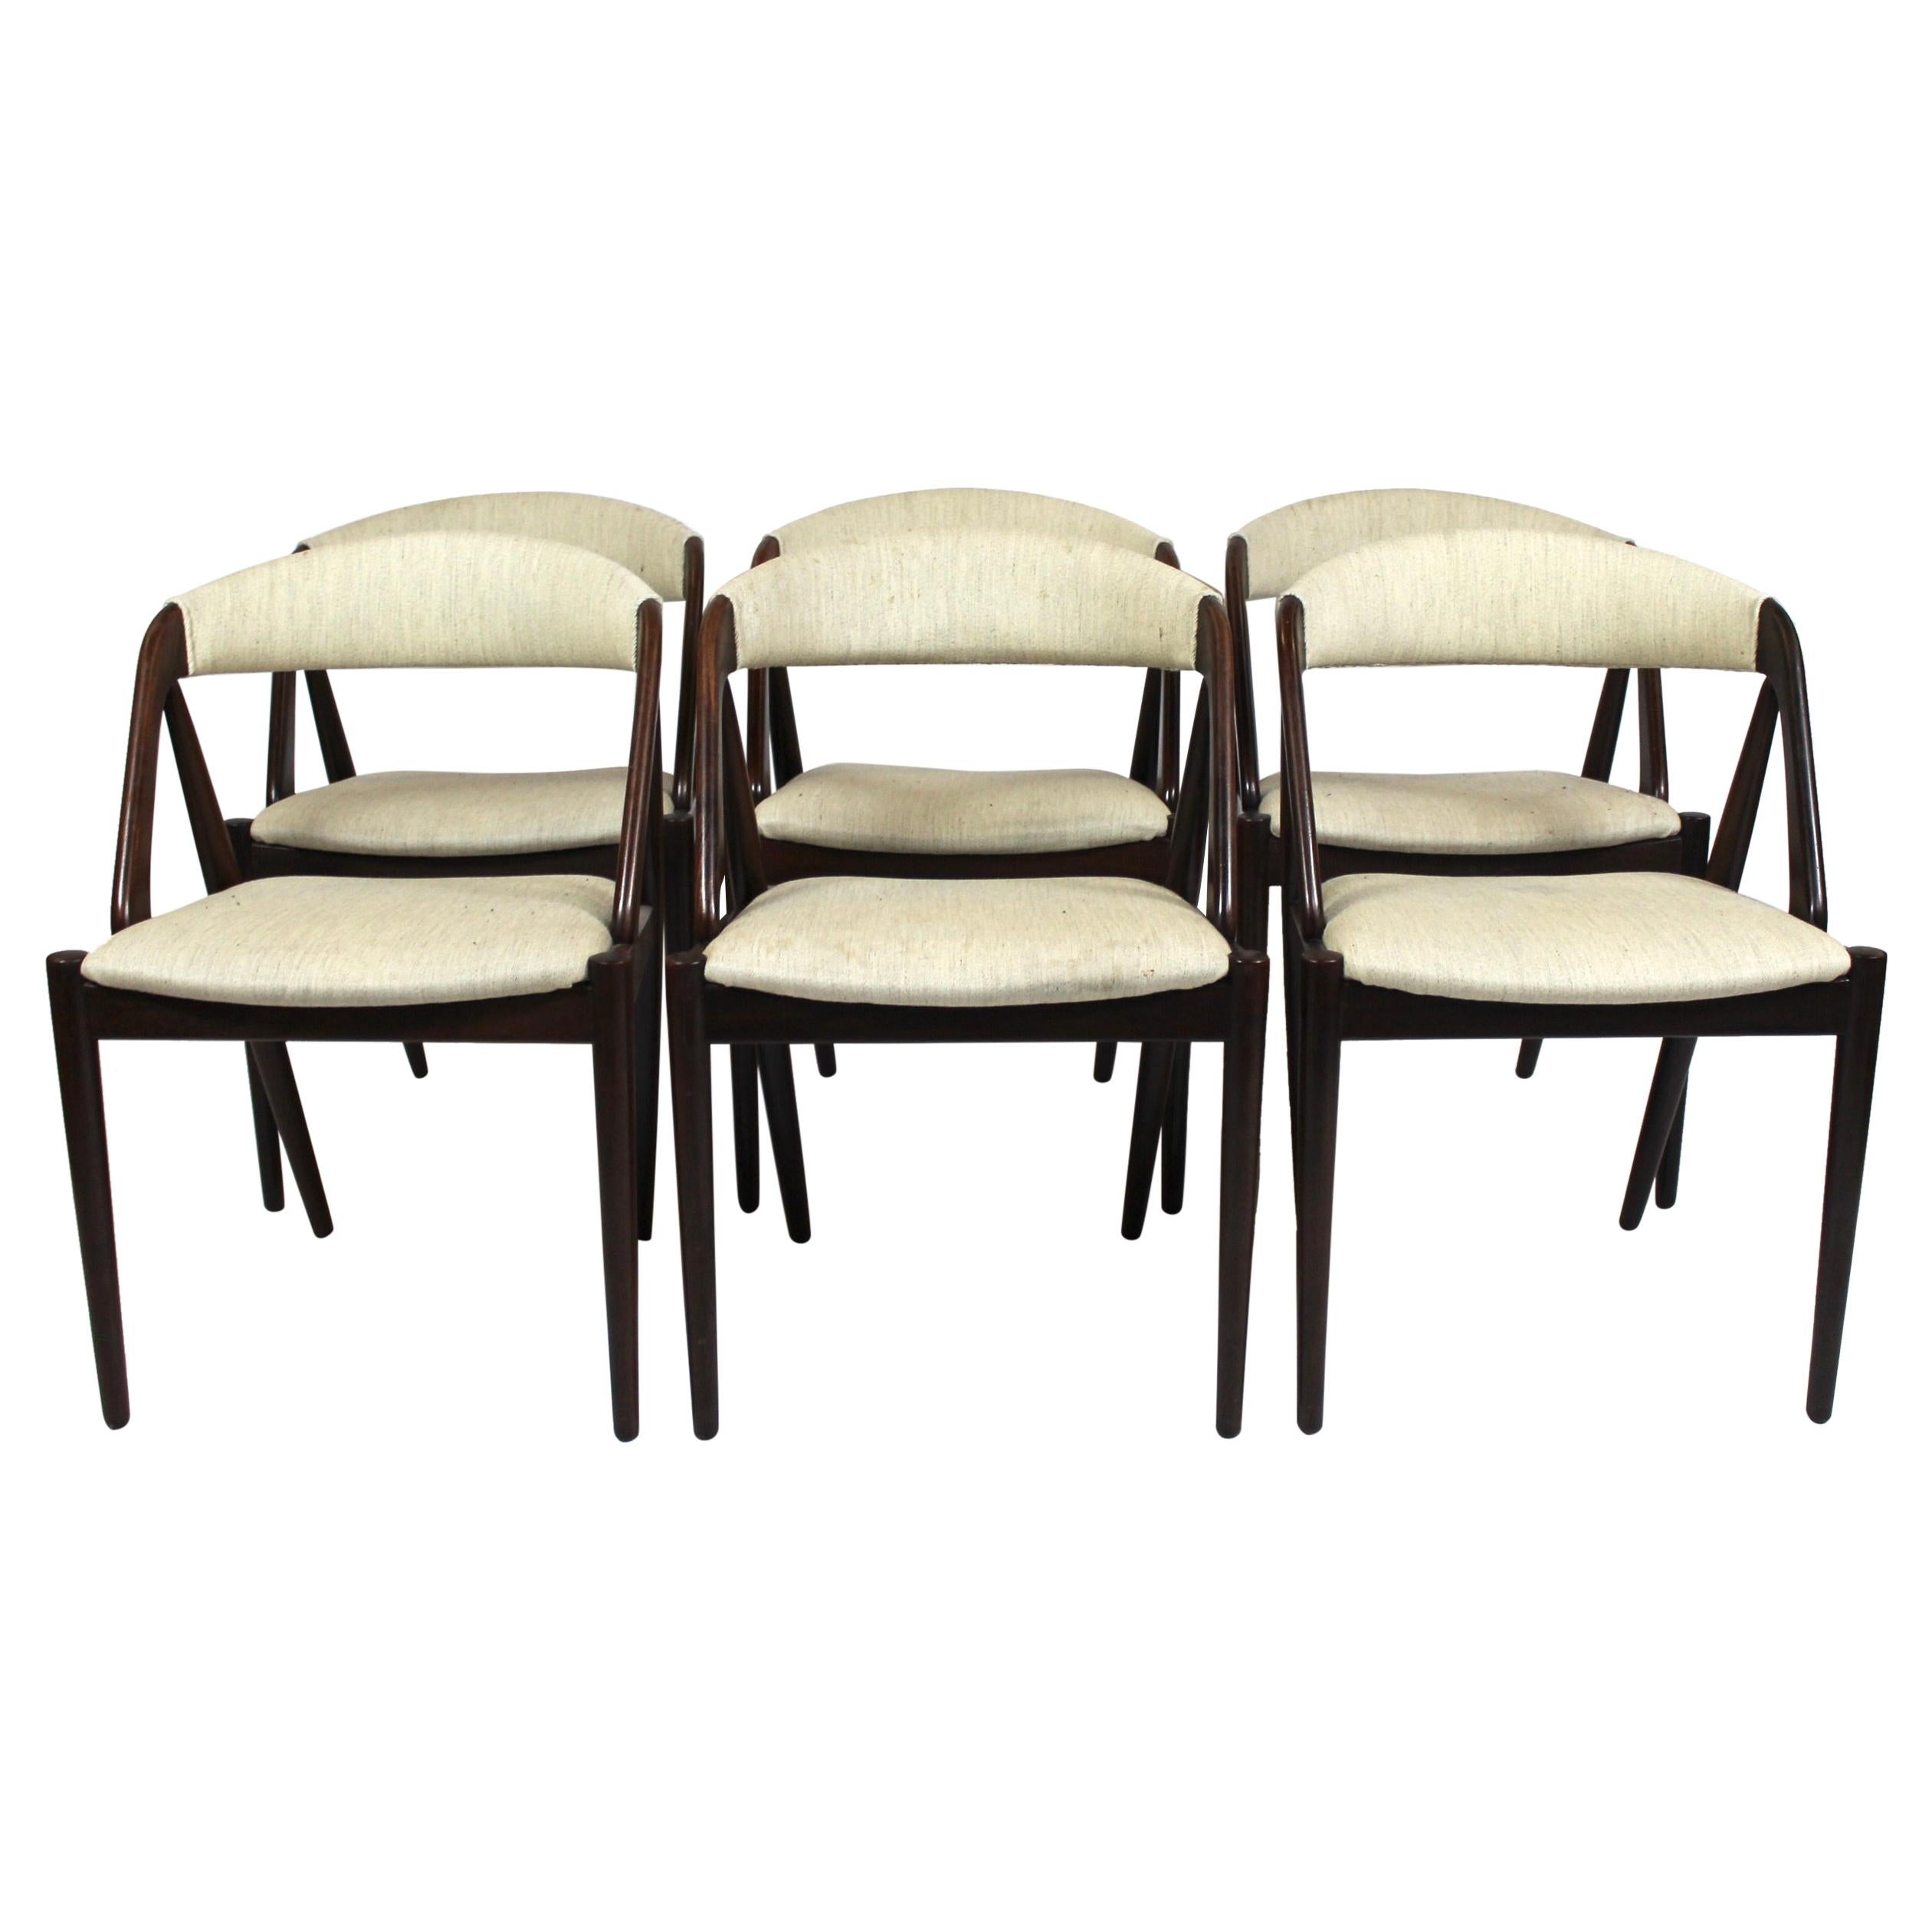 Set of 6 Dining Chairs, Model 31, by Kai Kristiansen and Schou Andersen, 1960s